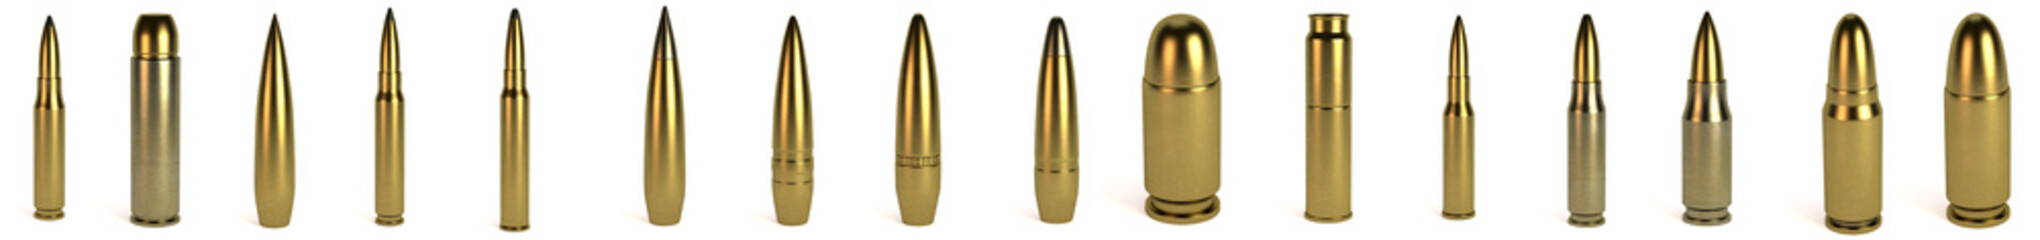 realistic 3d render of bullets